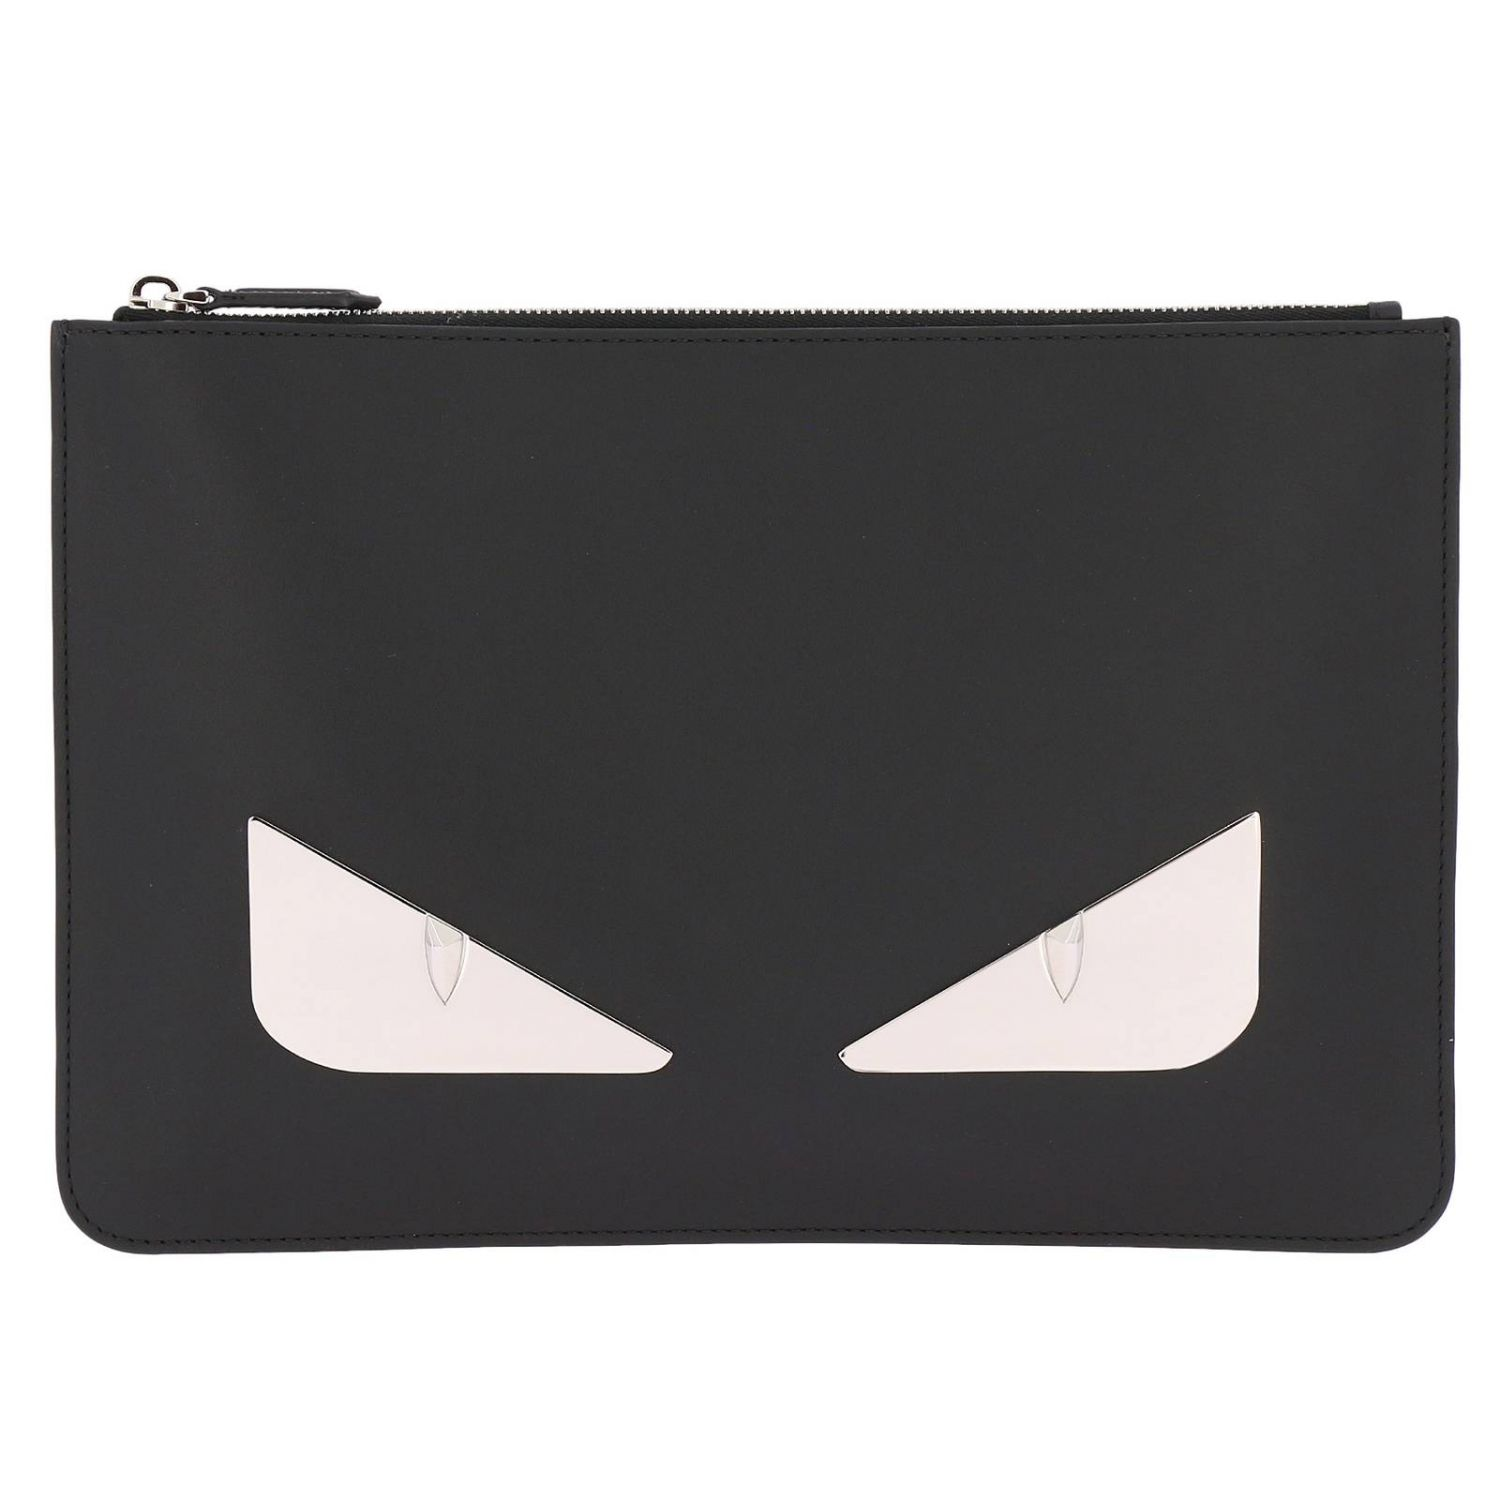 Fendi Monster Eyes clutch bag in smooth leather with maxi metallic Eyes Bag Bugs black 1